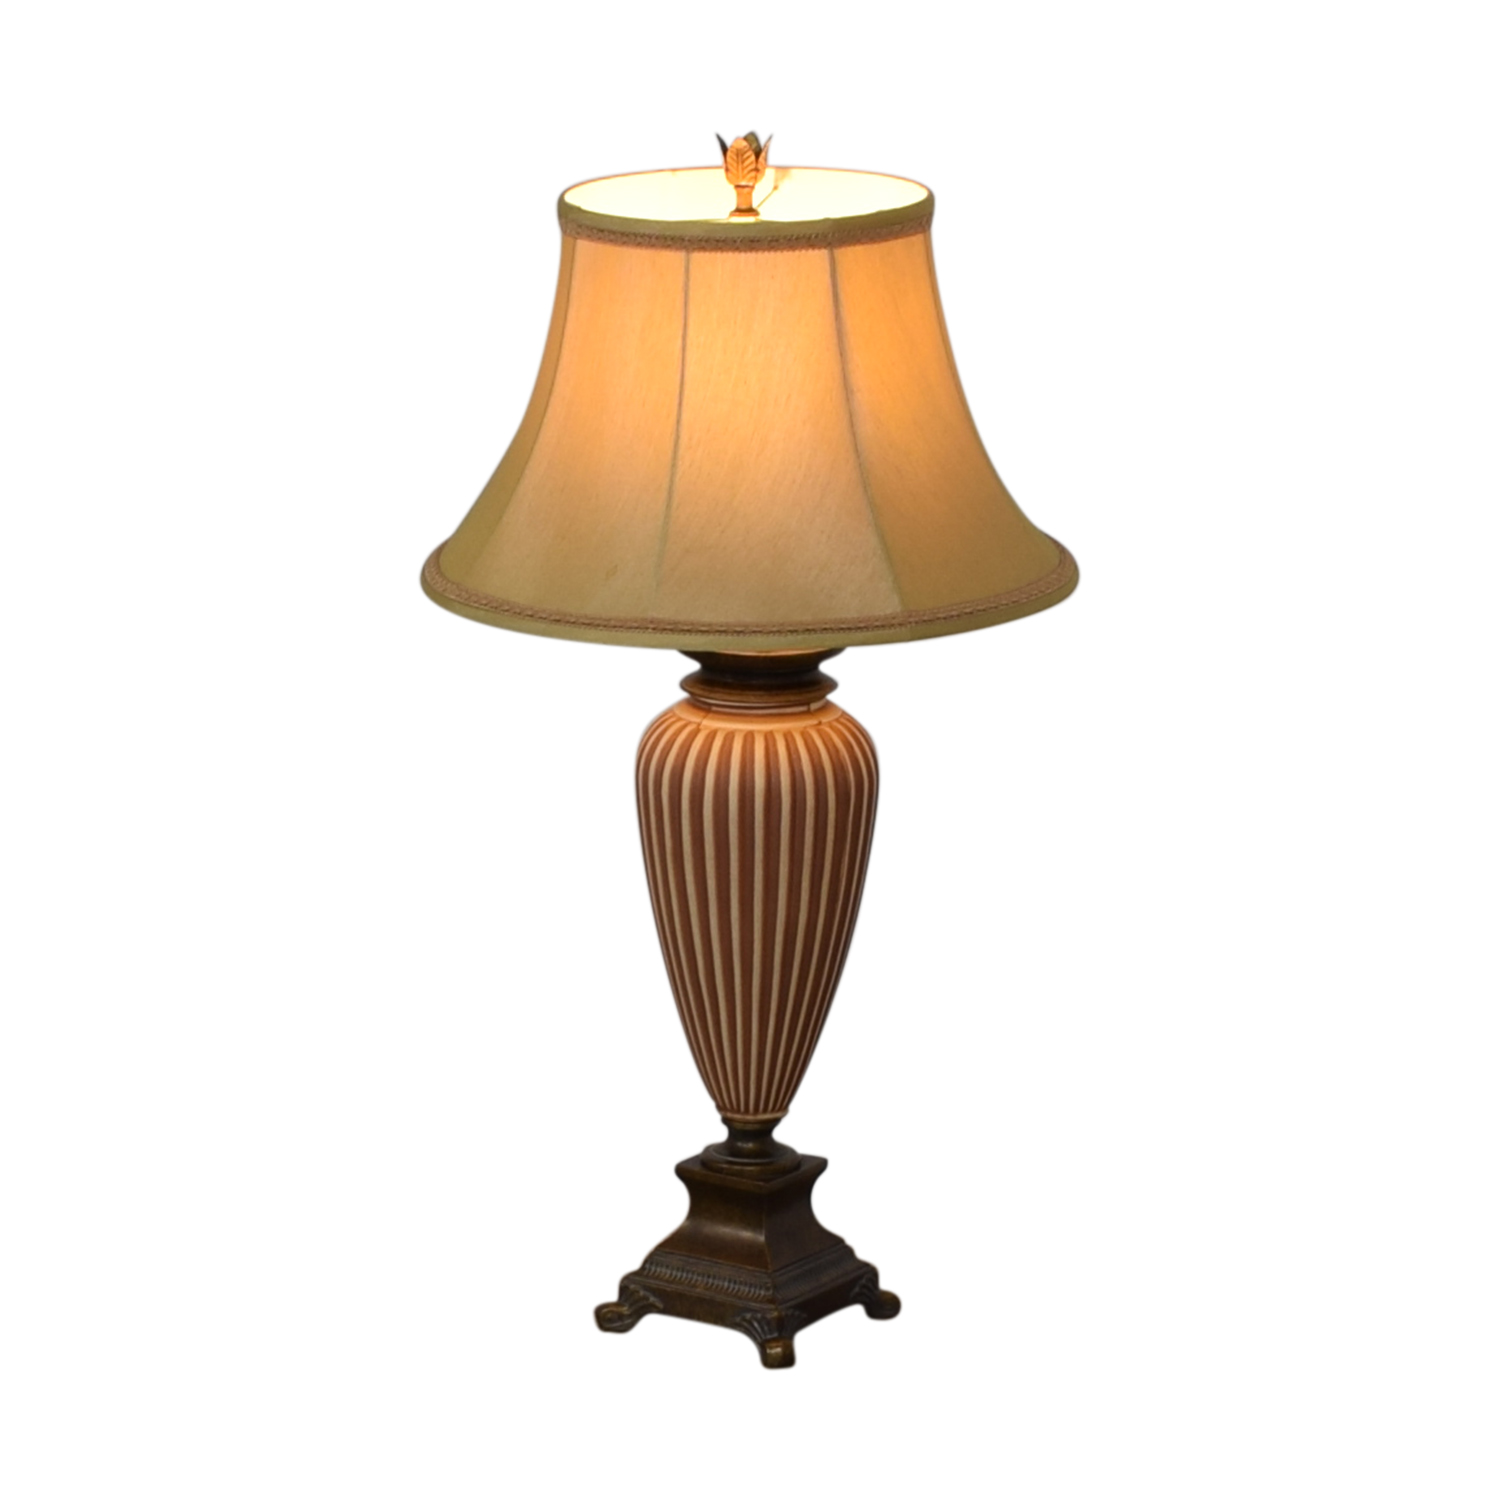 Ethan Allen Ethan Allen Table lamp used